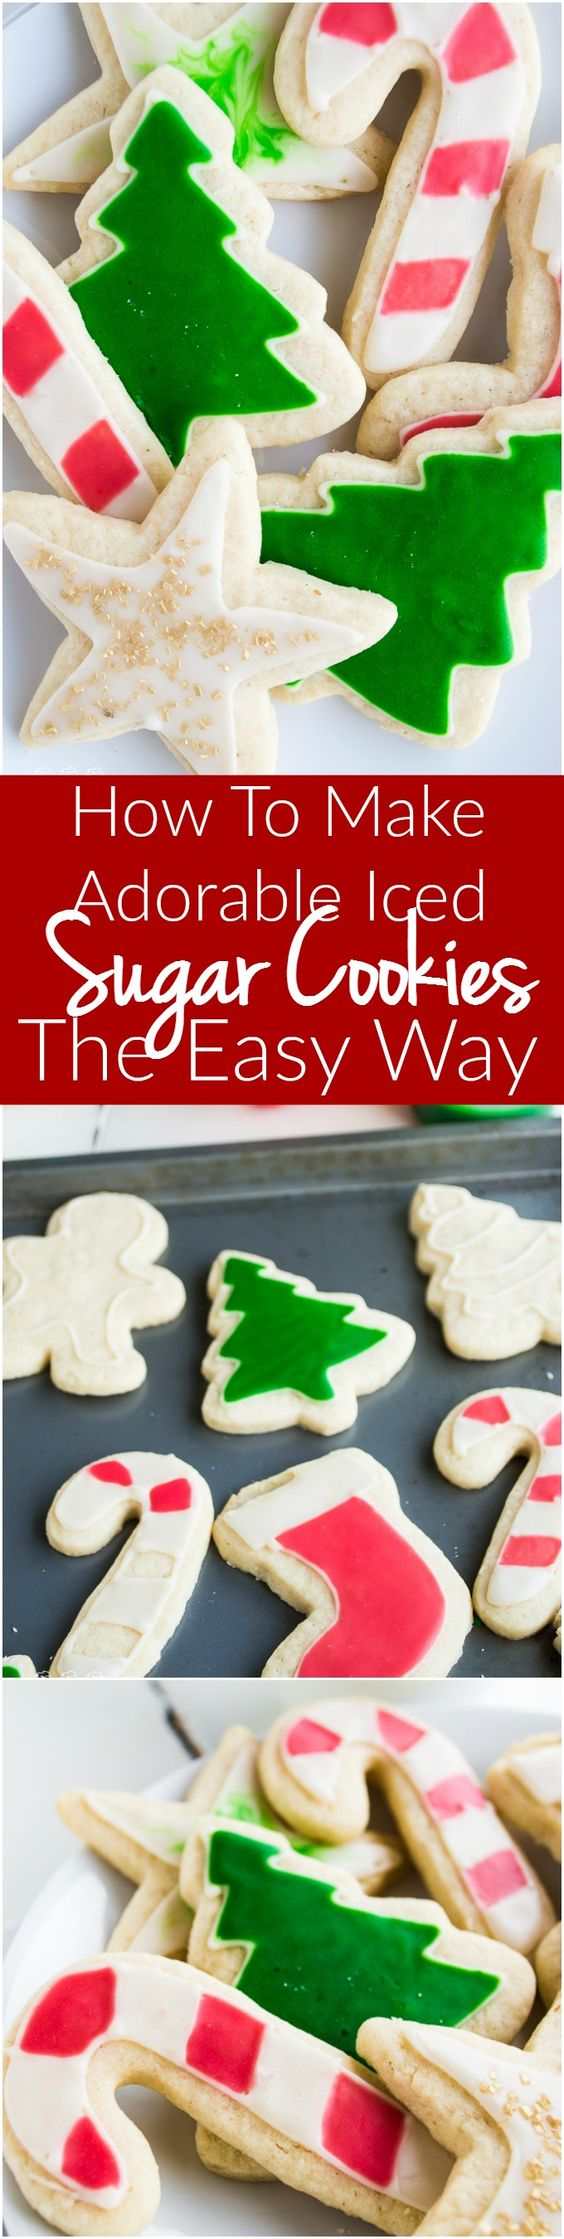 easiest way to frost sugar cookies